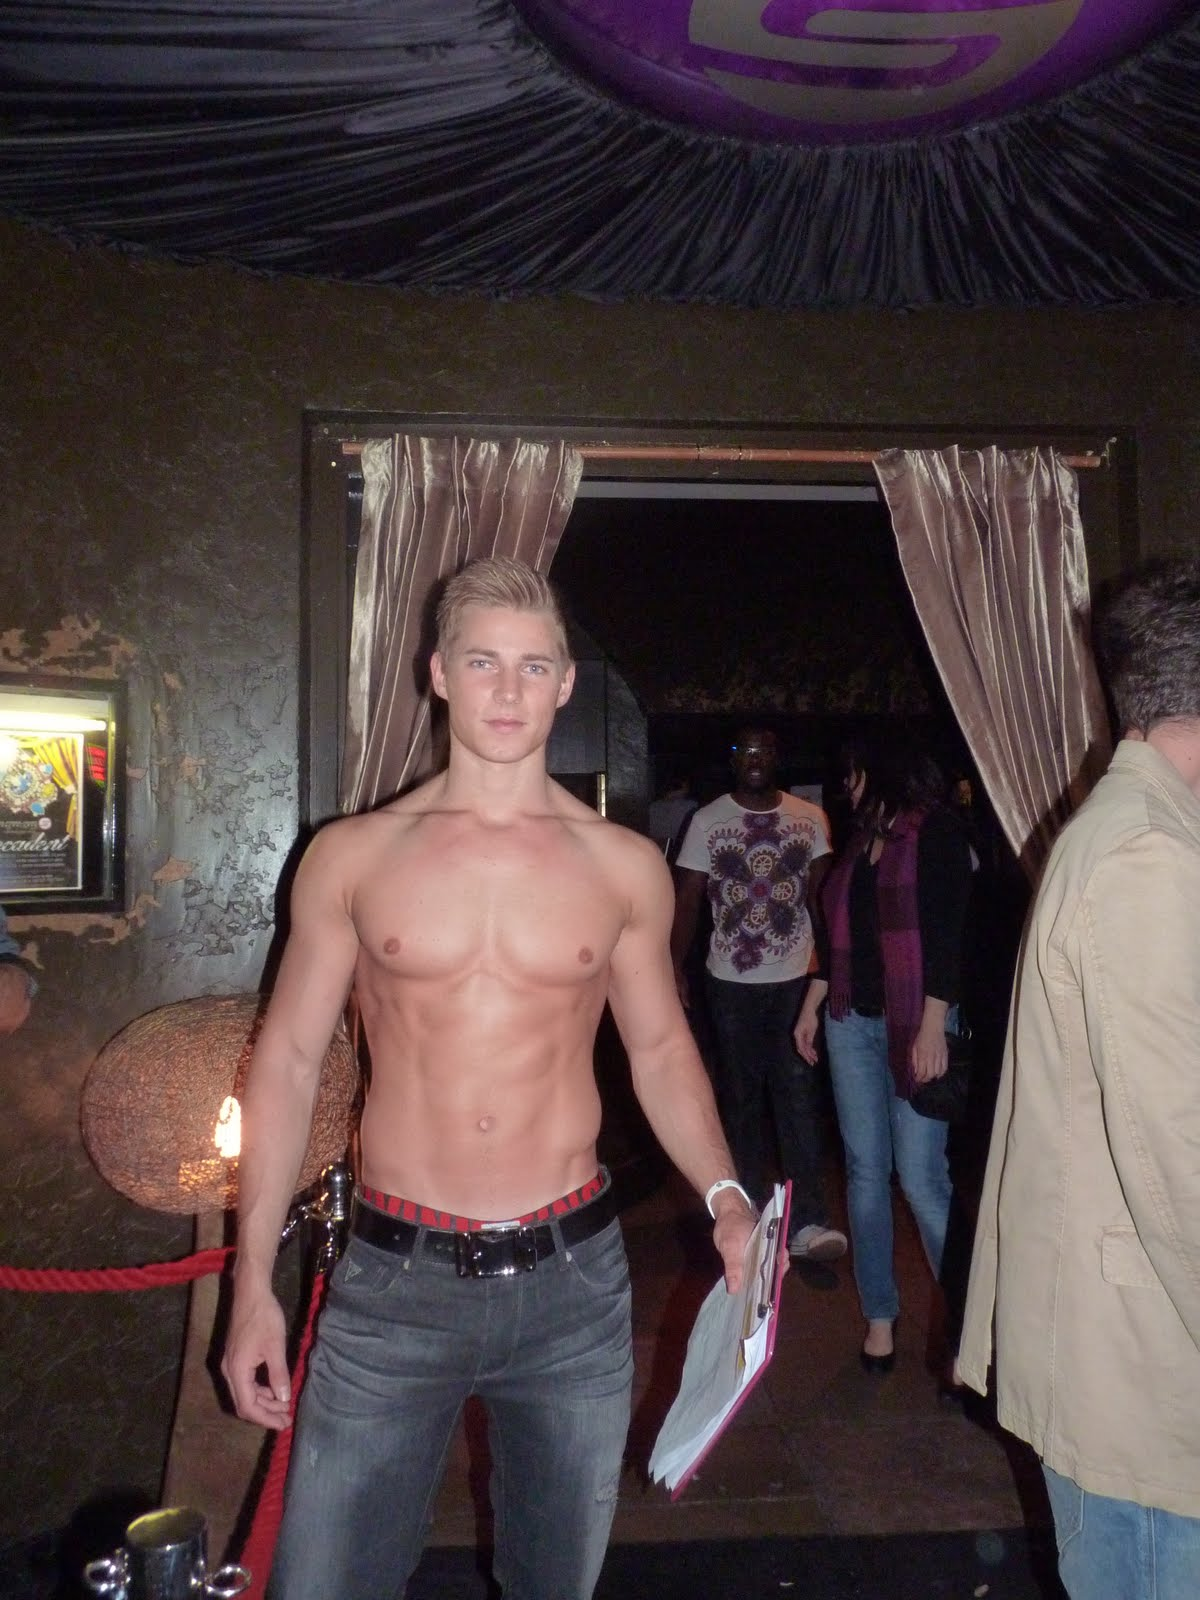 from Elliott gay london clubbing